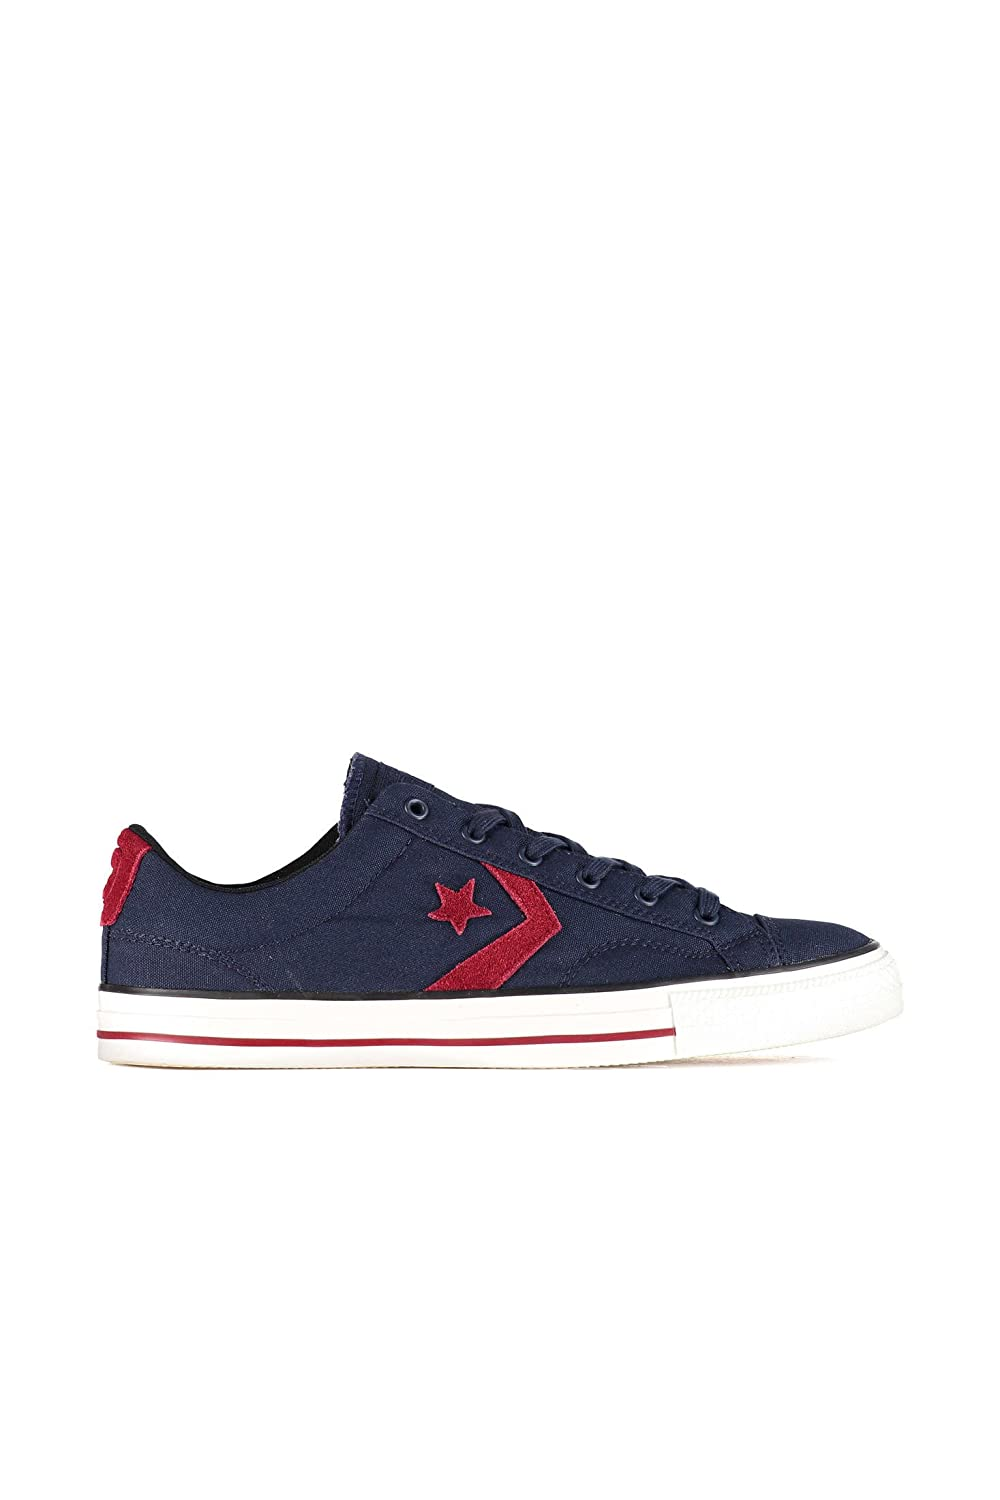 Converse Cons Star Player Sneaker (Obsidian/Rot)